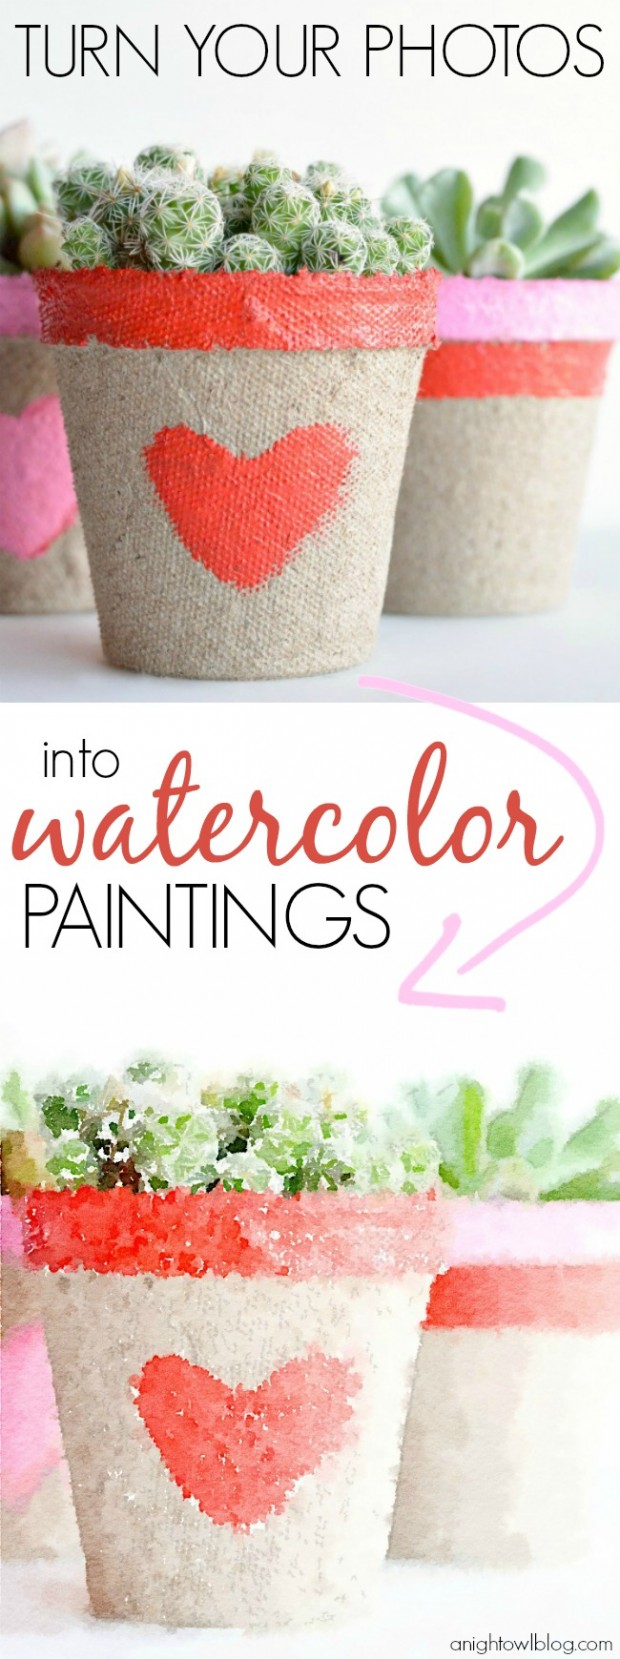 17 Creative DIY Projects for Unique Decorations for Your Home